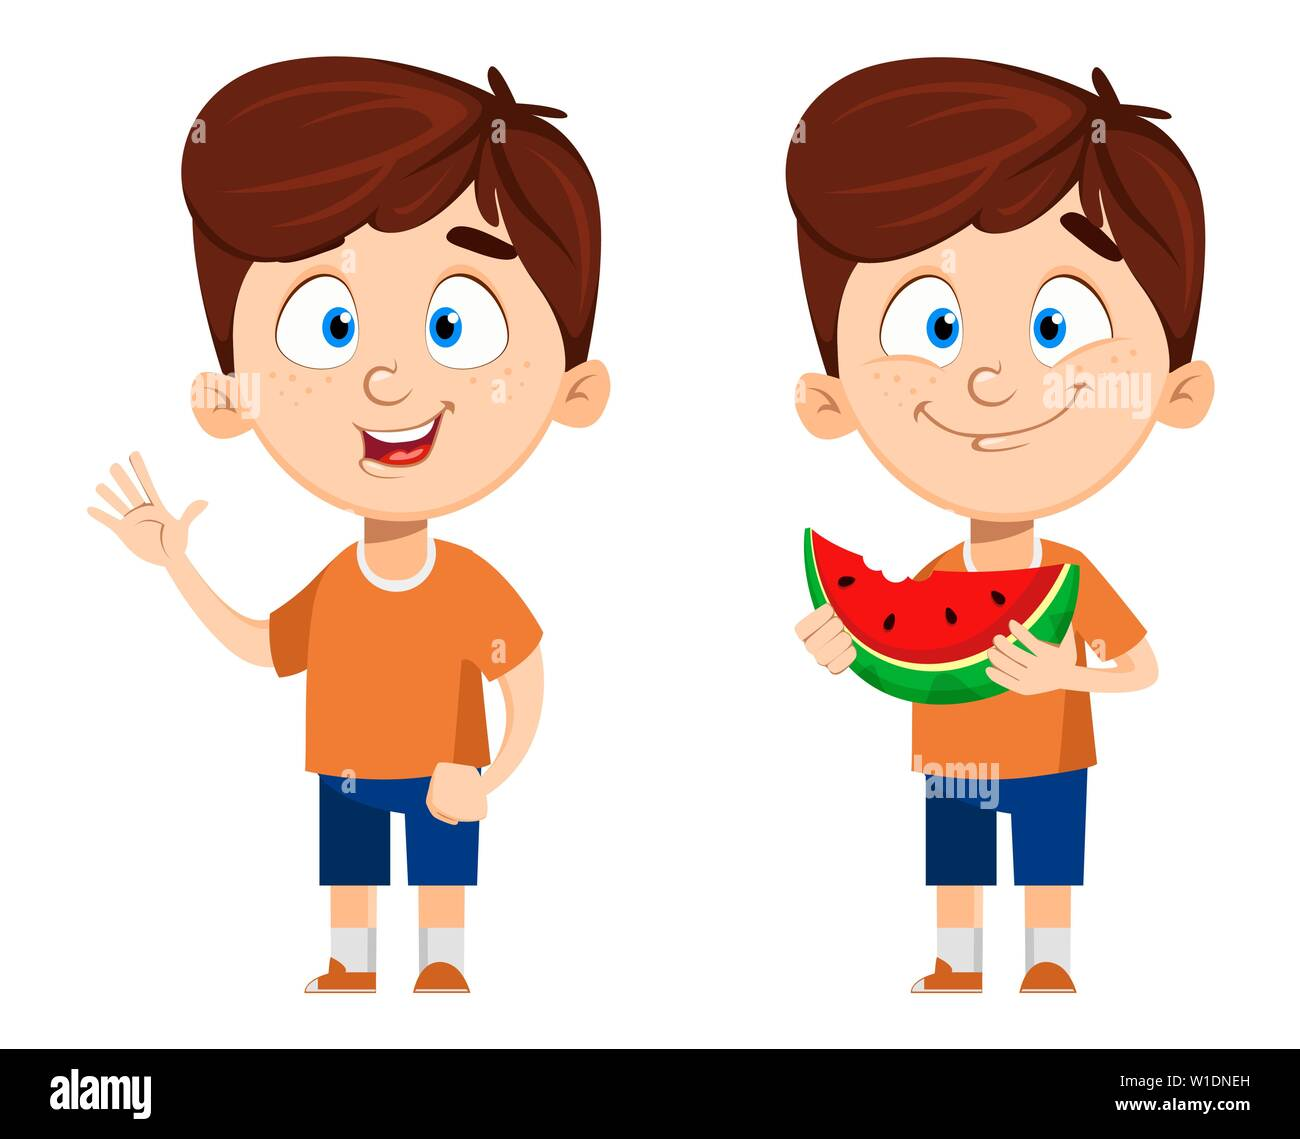 c609f9073 Boy cartoon character, set of two poses. Cute funny child eating ...